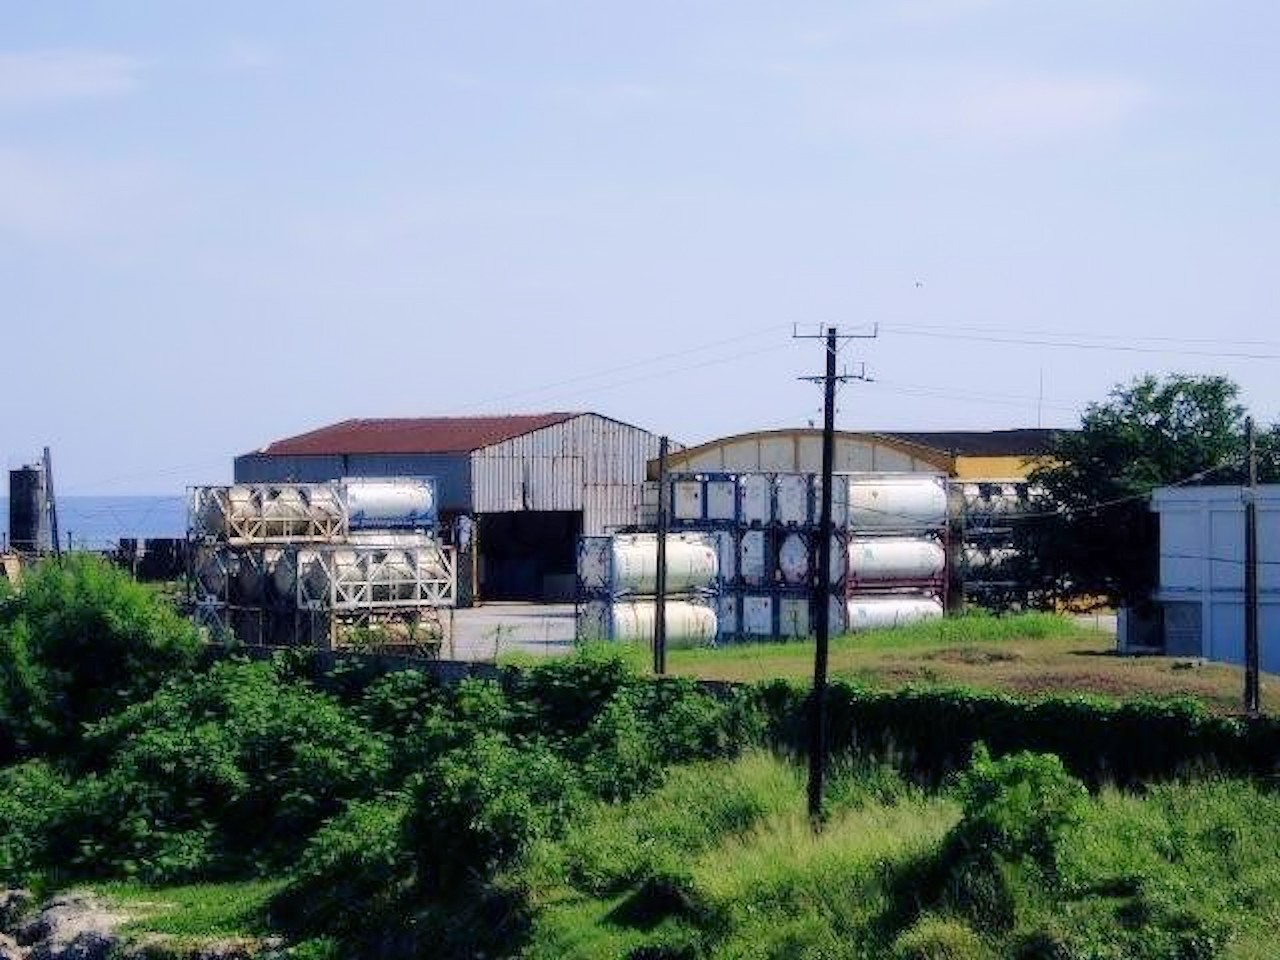 The Rum Factory of Santa Cruz is located in the municipality of Santa Cruz del Norte, Mayabeque province.